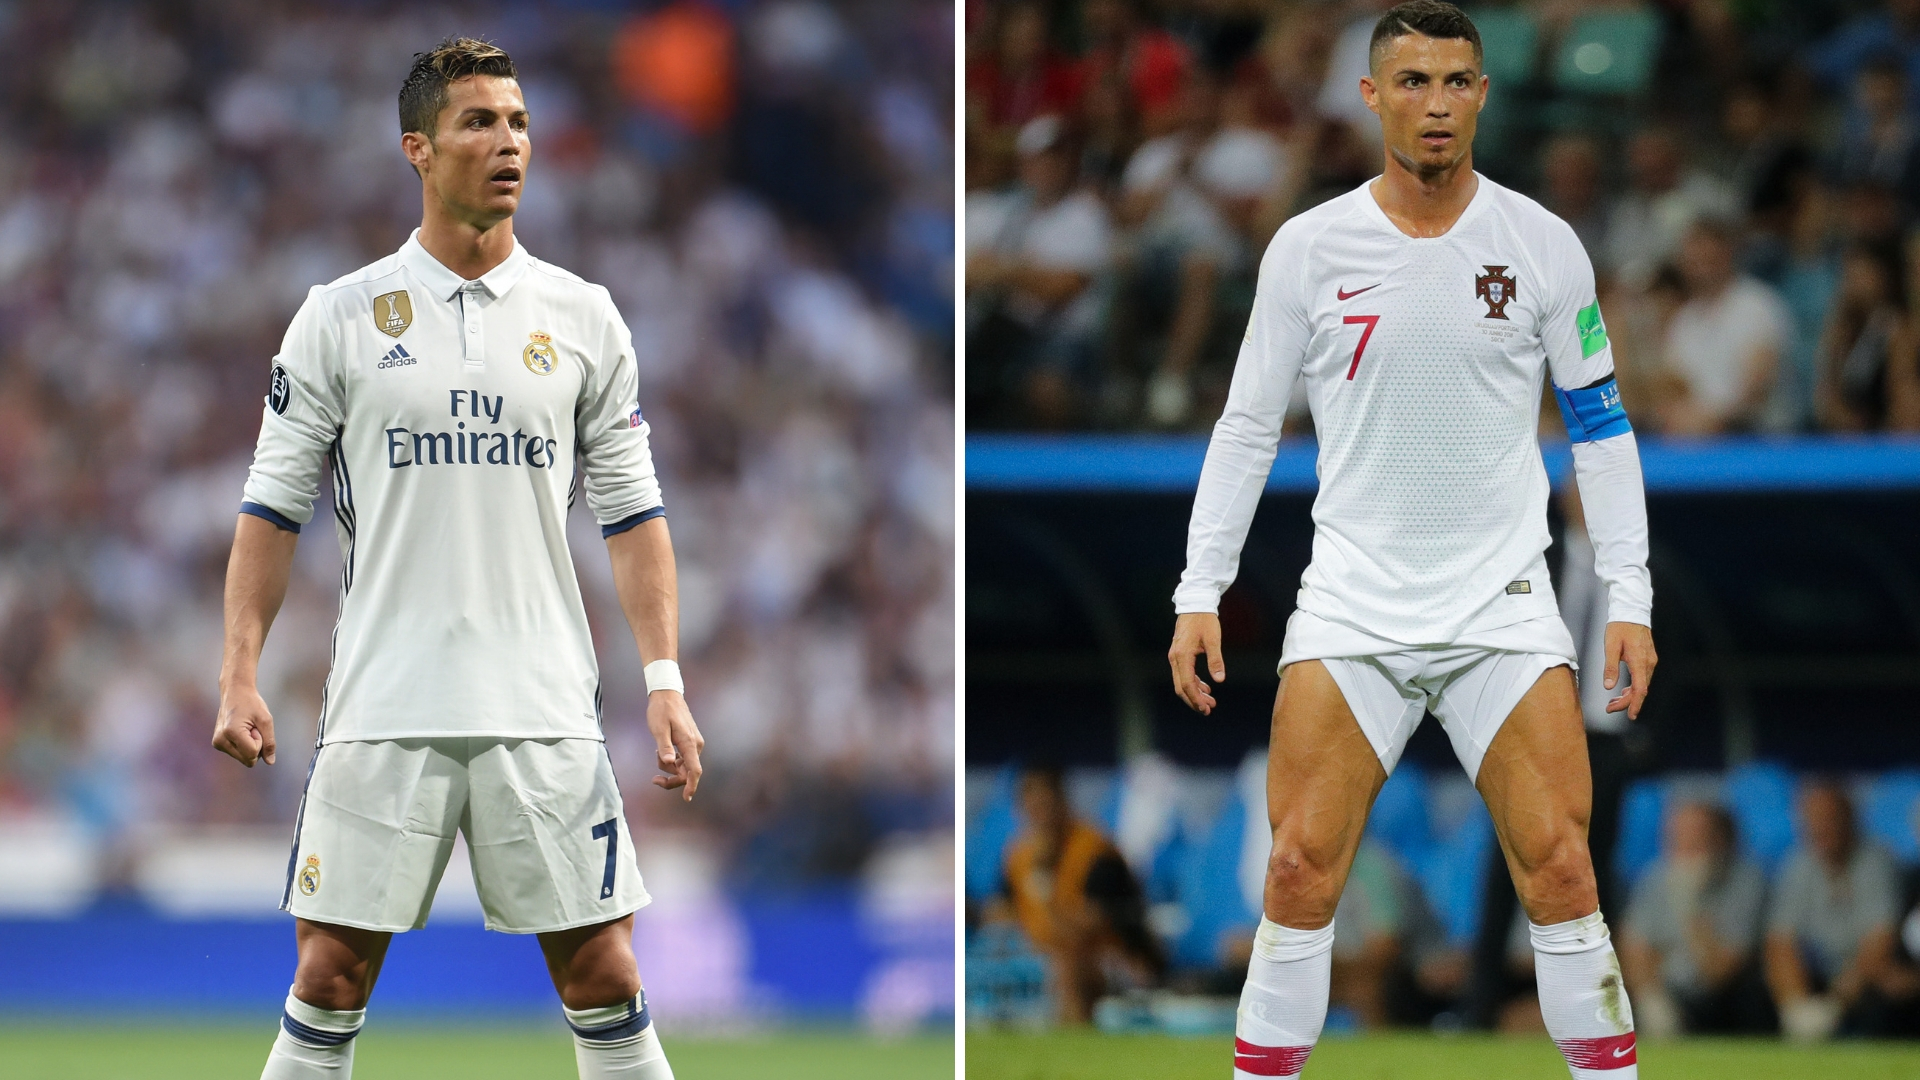 Why Cristiano Ronaldo Does His Trademark Stance Before He Takes Free